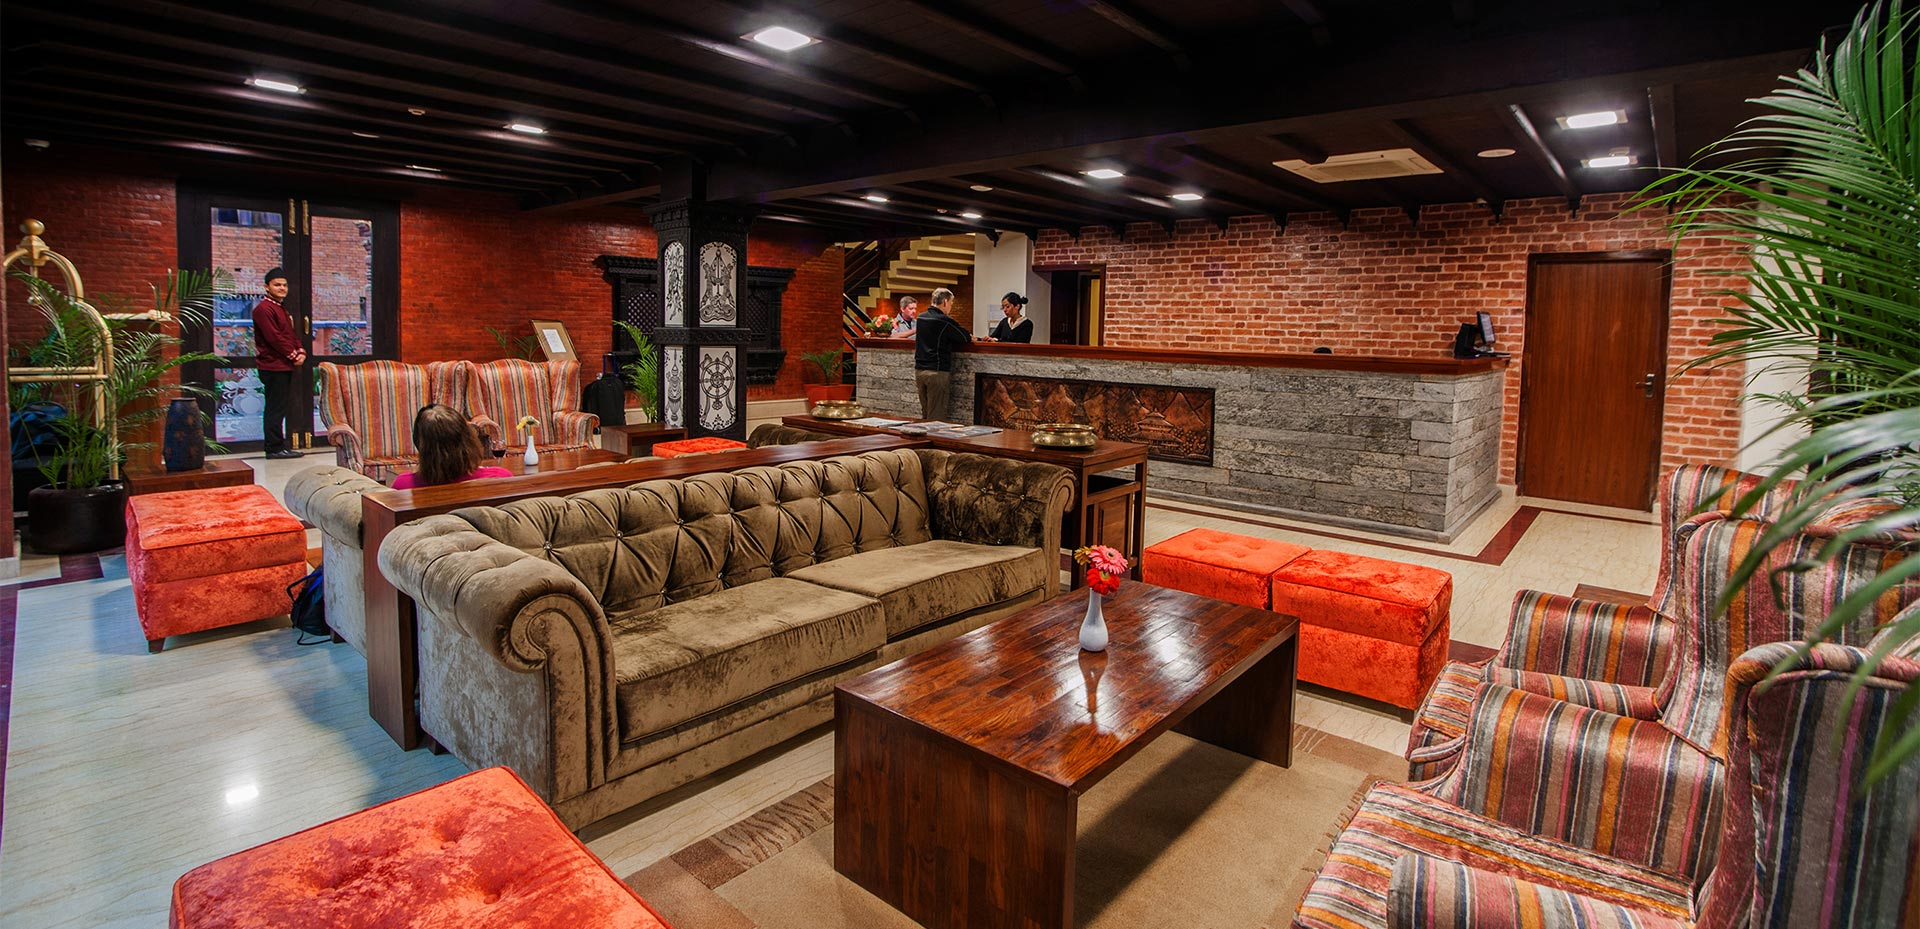 impressive by design cultural by inspiration - Traditional Hotel Interior